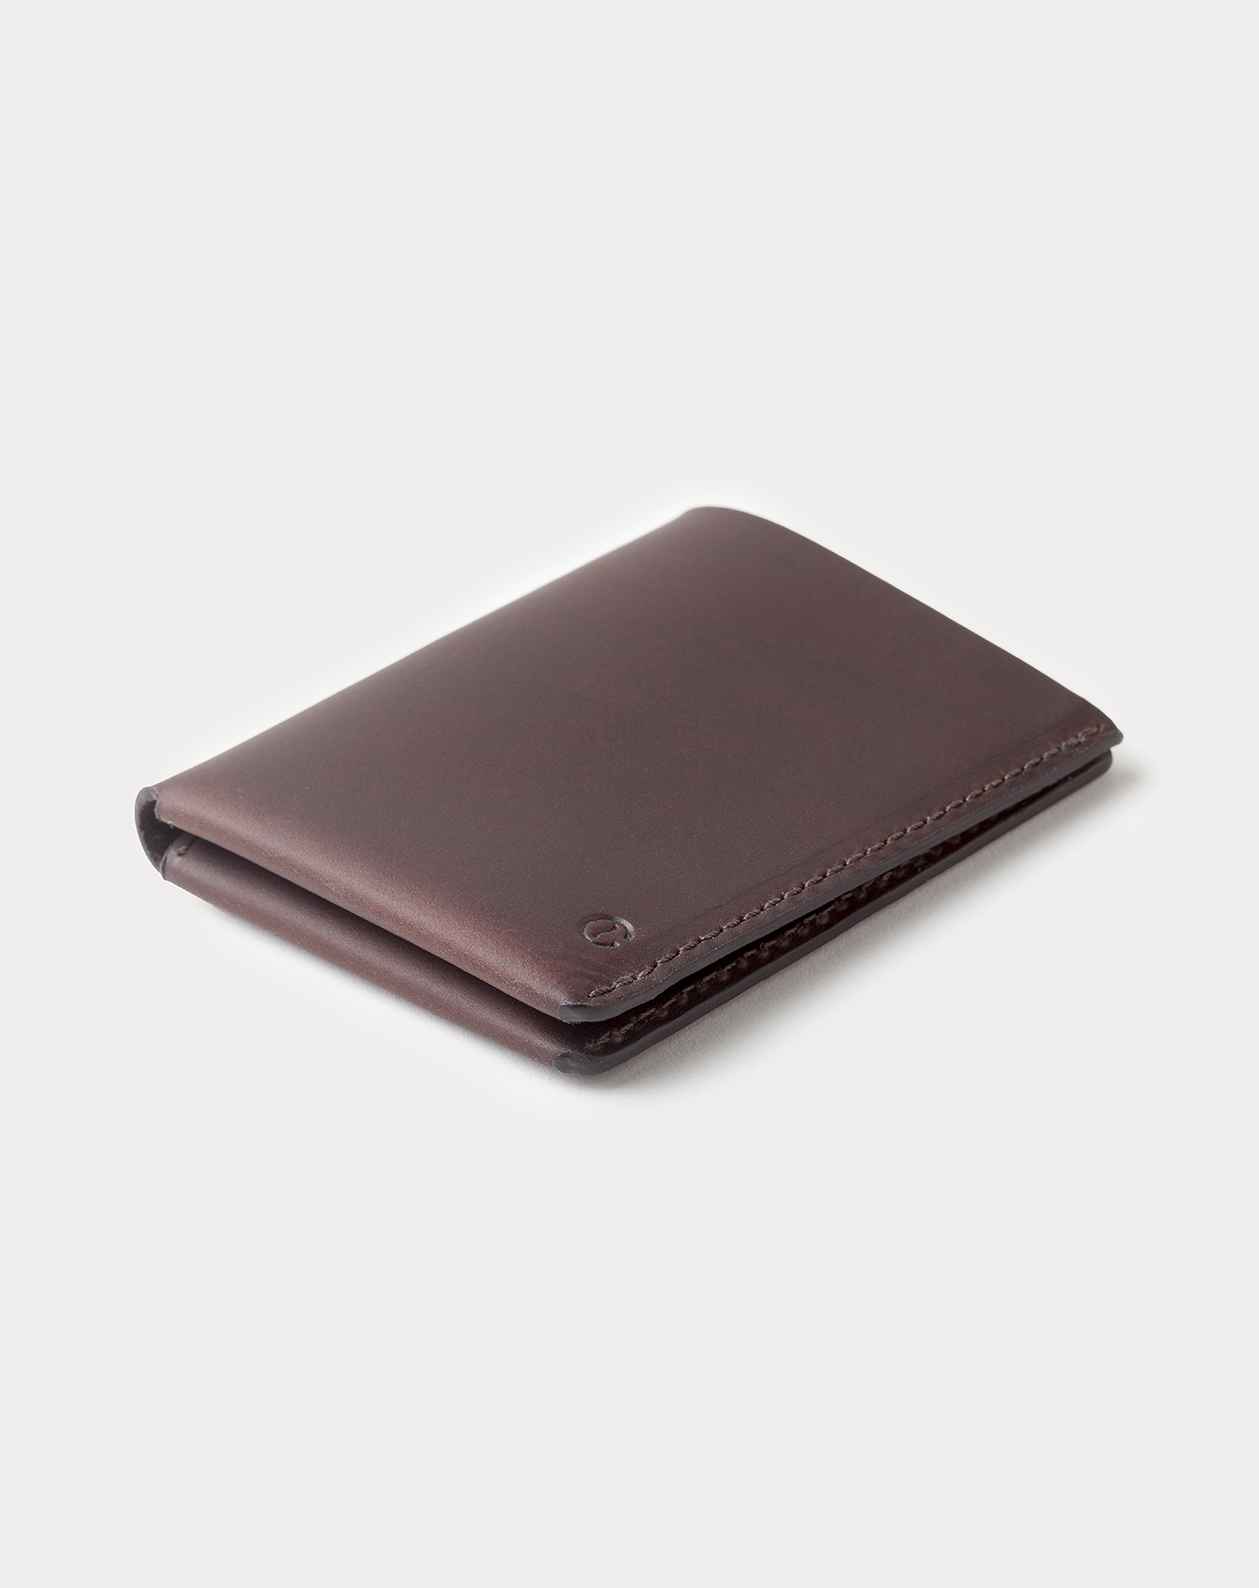 slim wallet black for cards and bills